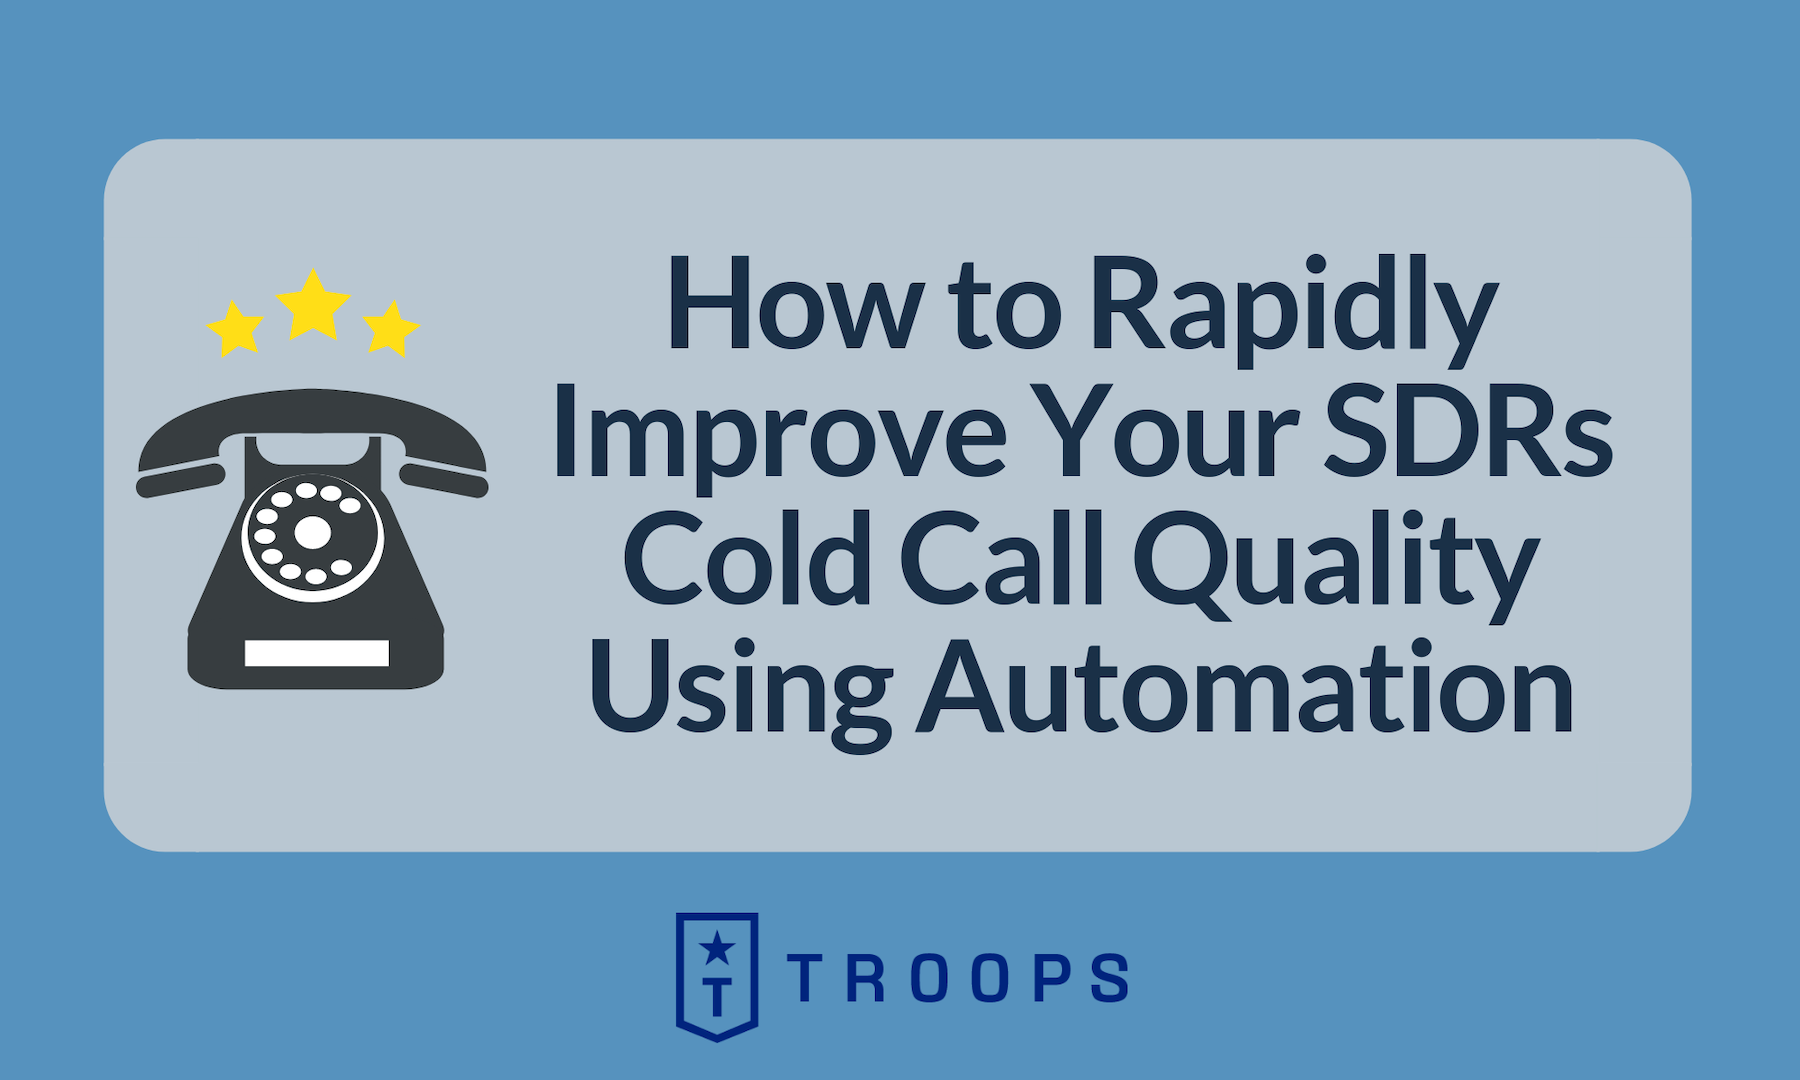 How to Rapidly Improve Your SDRs Cold Call Quality Using Automation